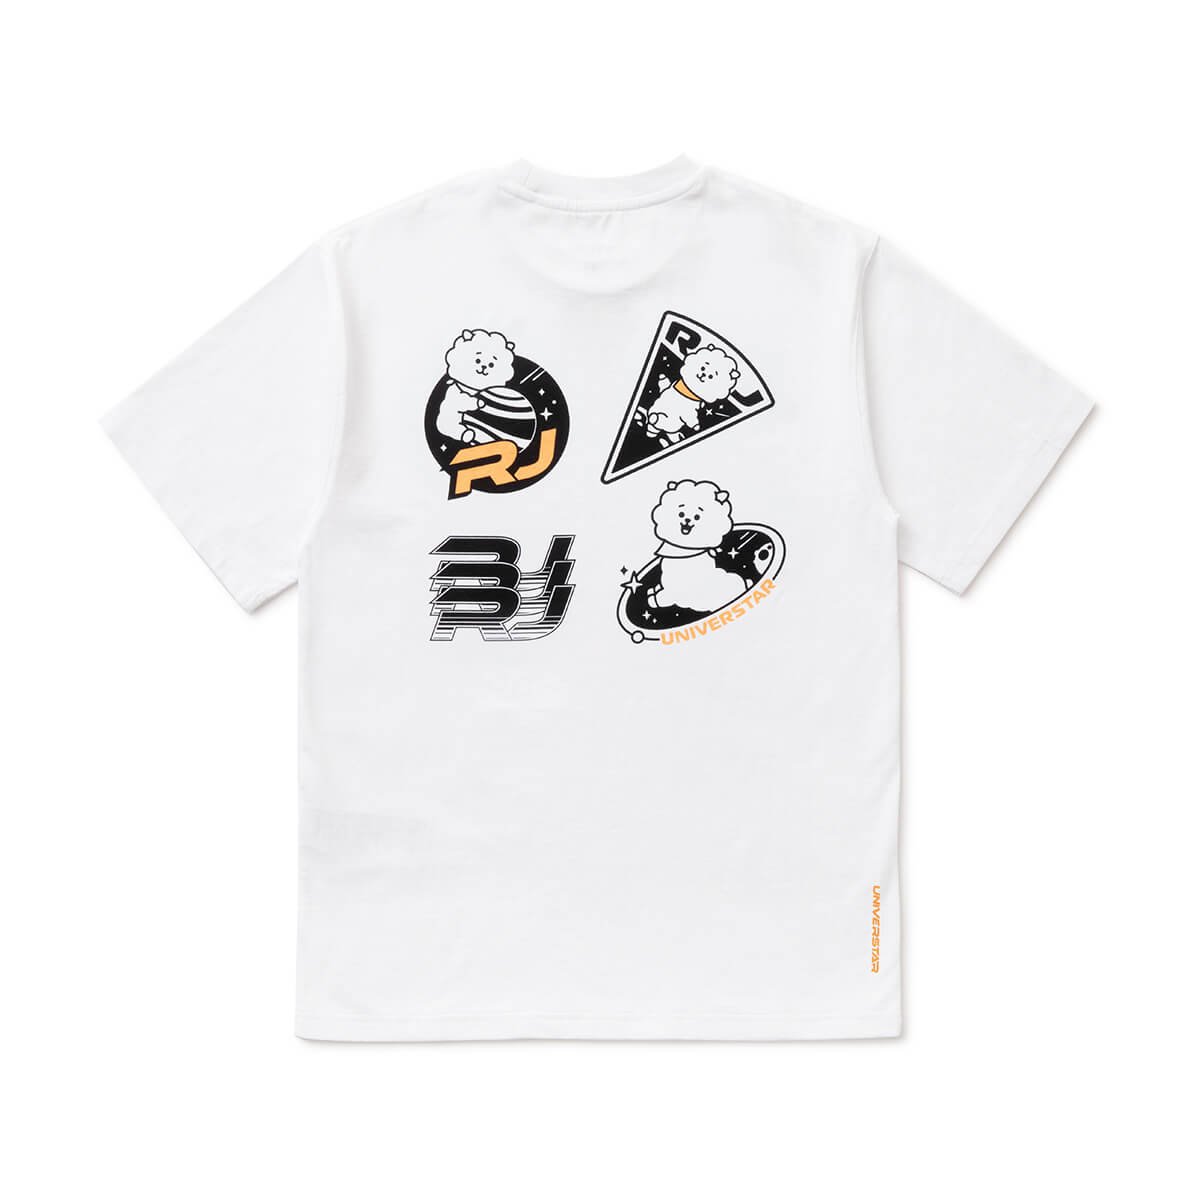 BT21 RJ 20 Space Wappen T-Shirt White